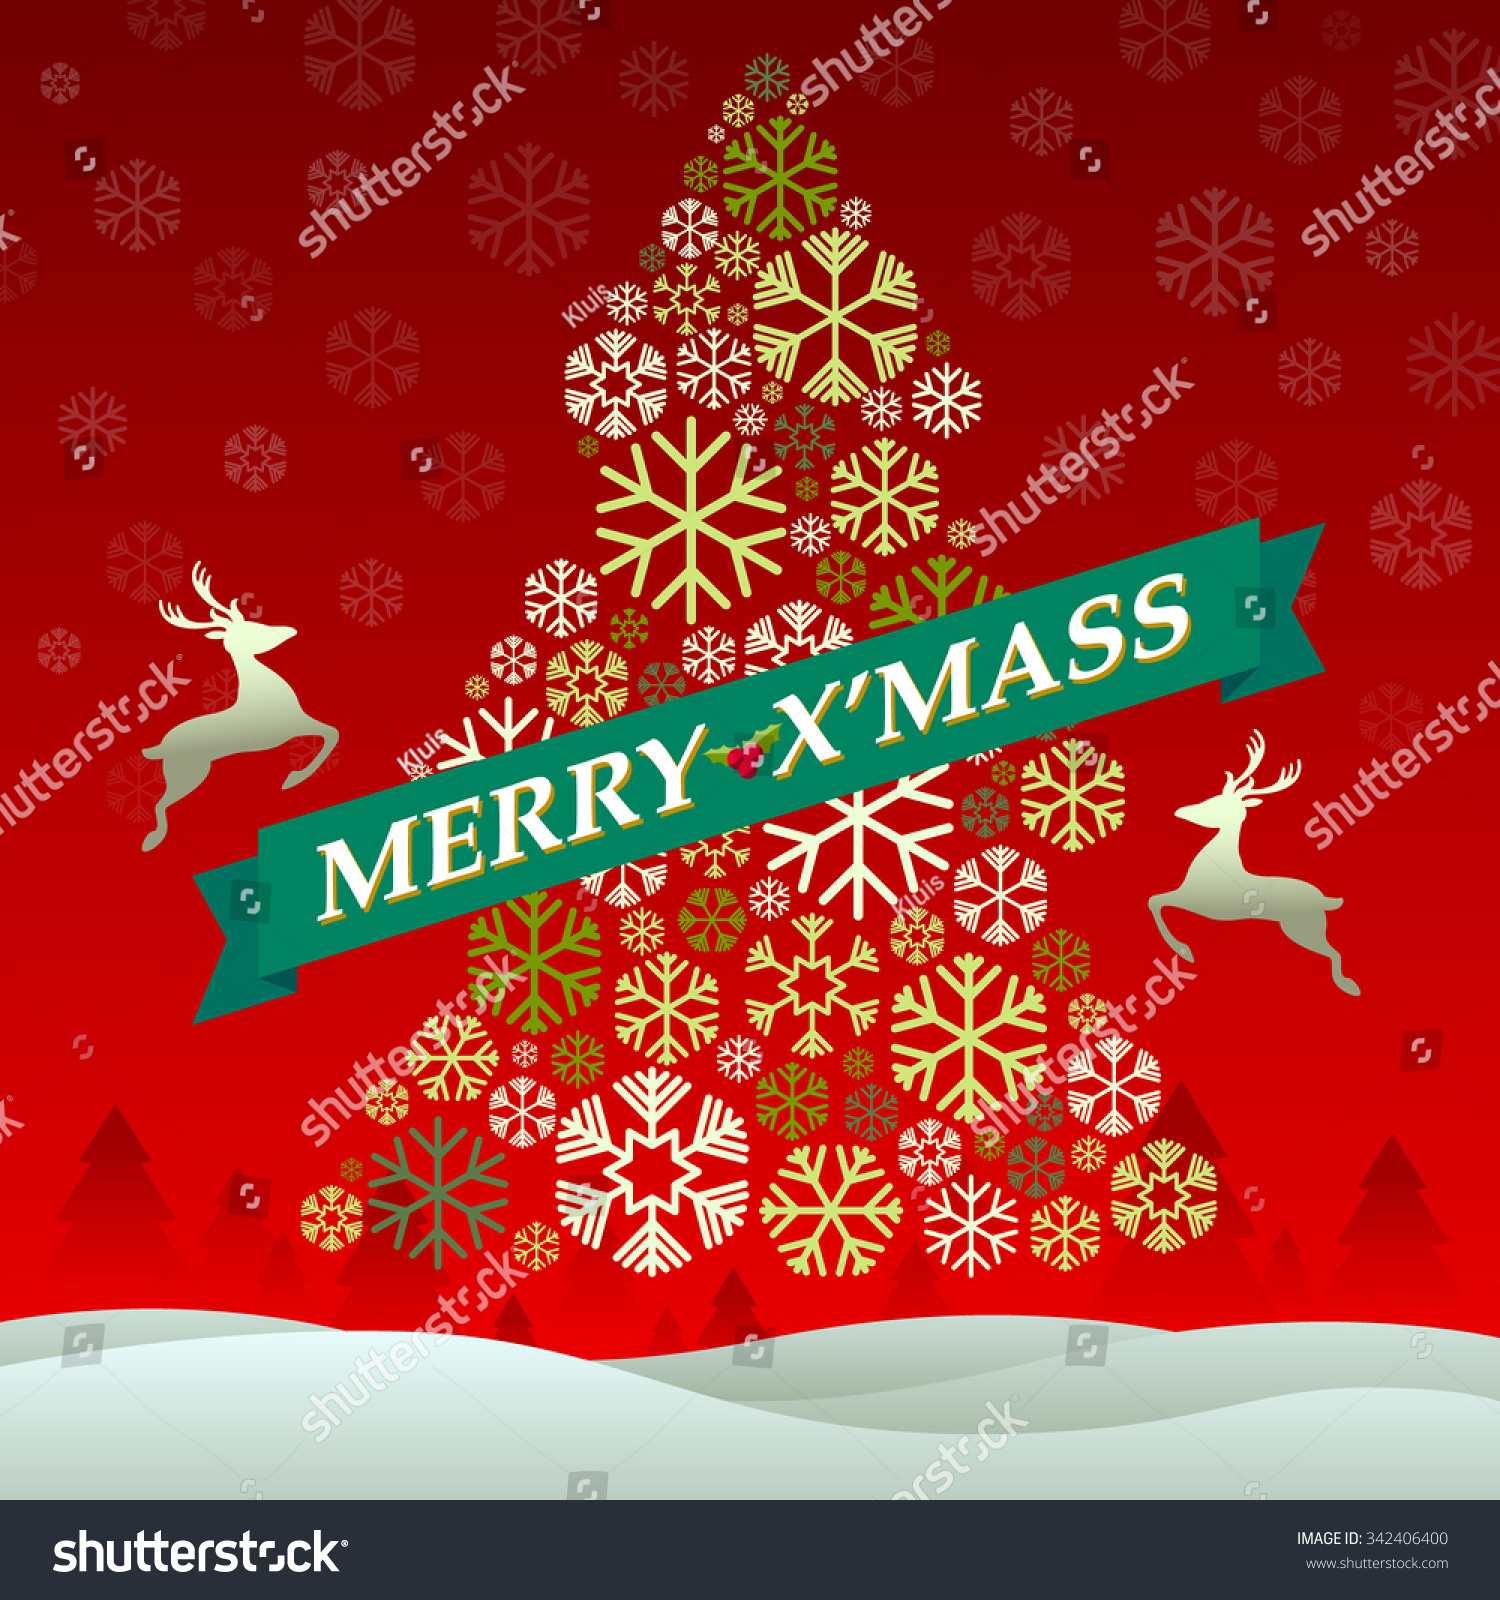 Merry x mass vector illustration stock vector royalty free merry xmass vector illustration m4hsunfo